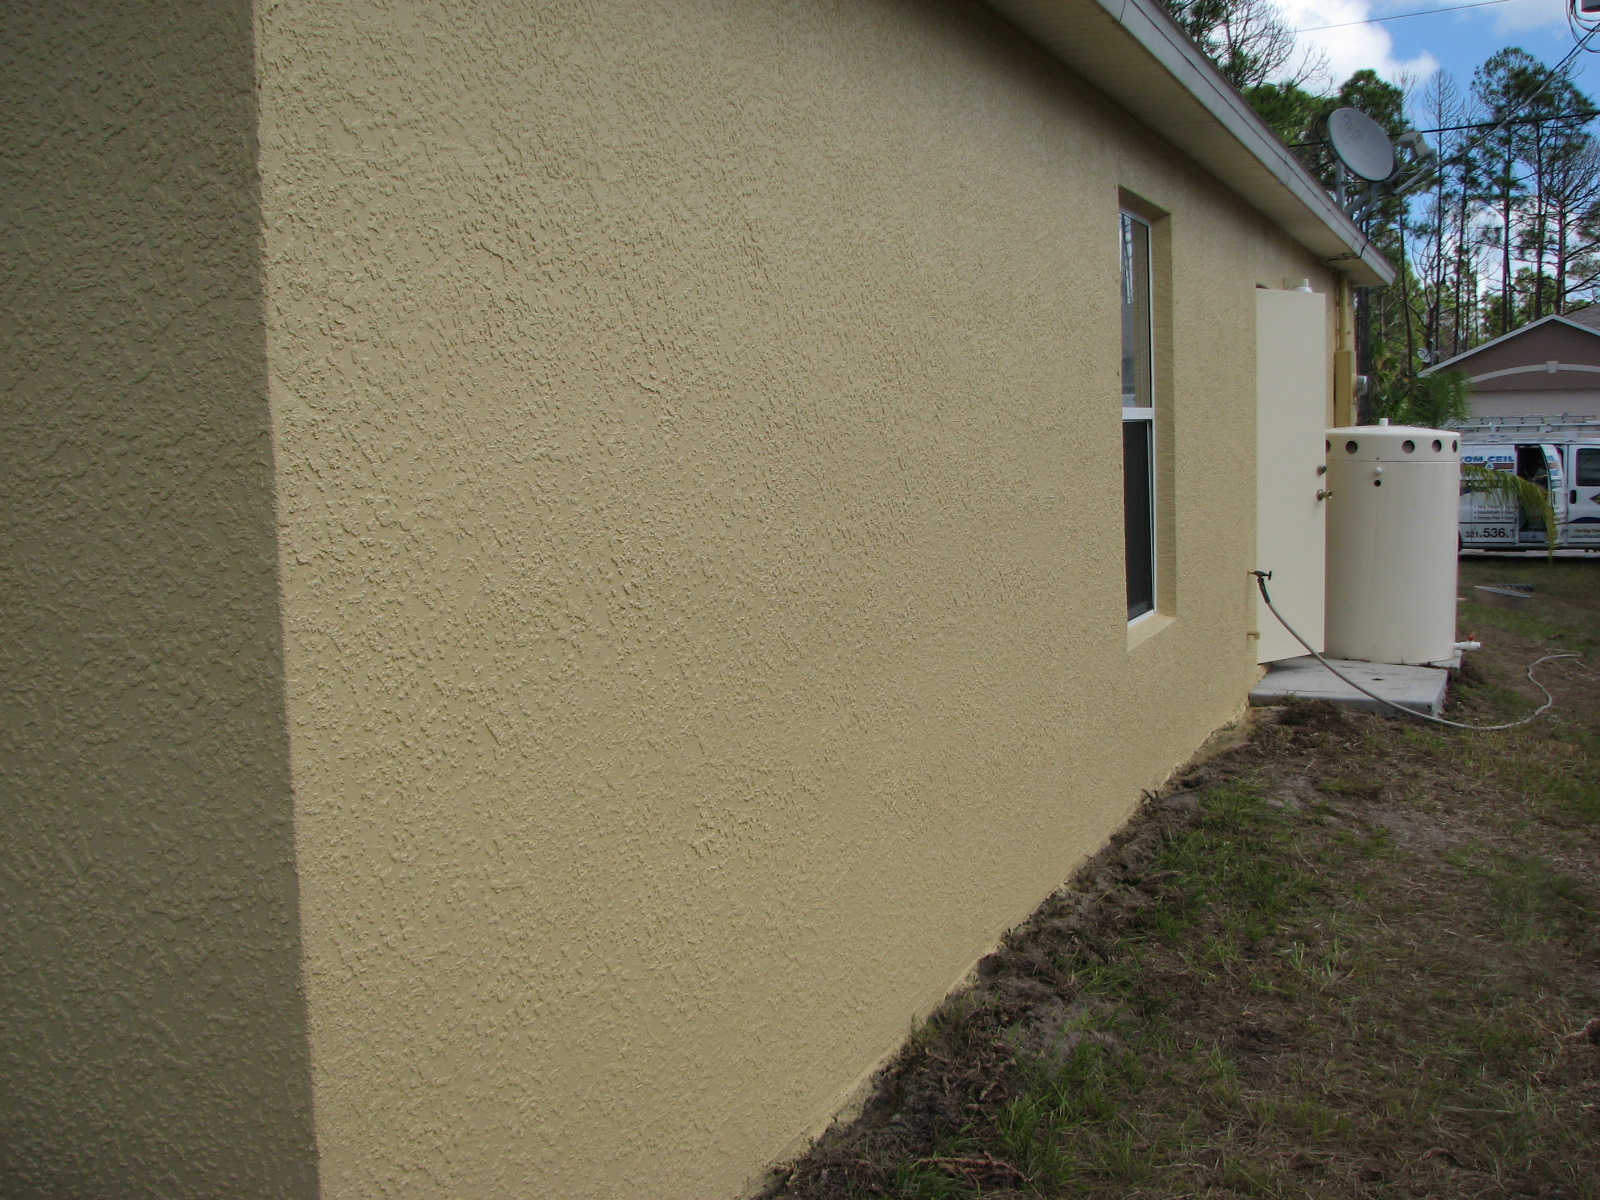 Exterior Painting A Short Sale Home In Palm Bay Fl By